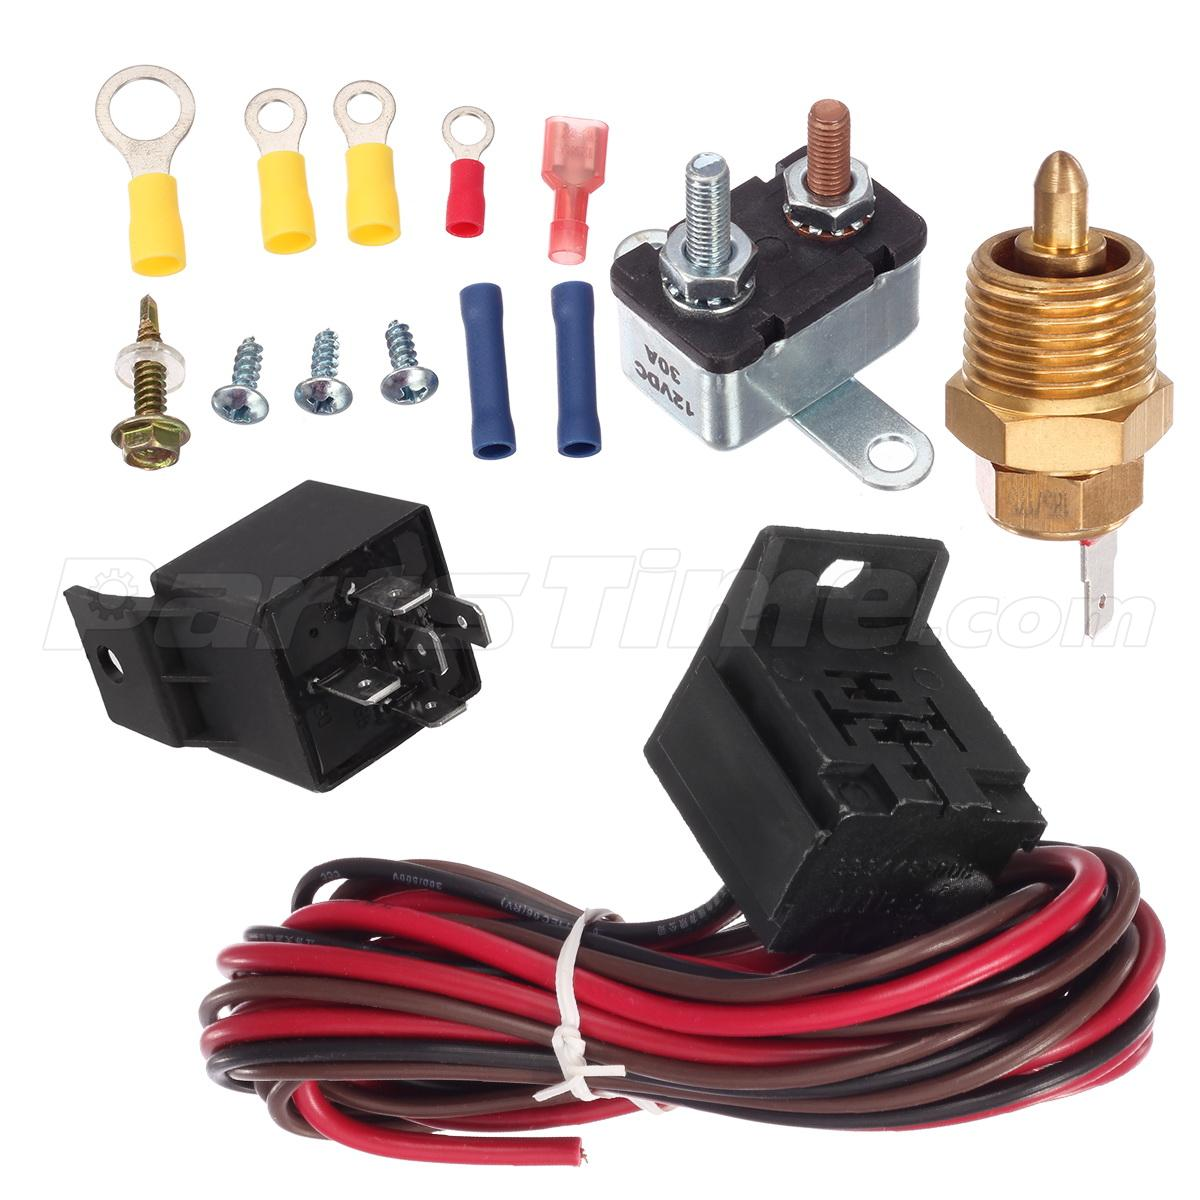 200 degree engine cooling thermostat sensor relay kit for single or dual fan ebay - Four 200 degres thermostat ...